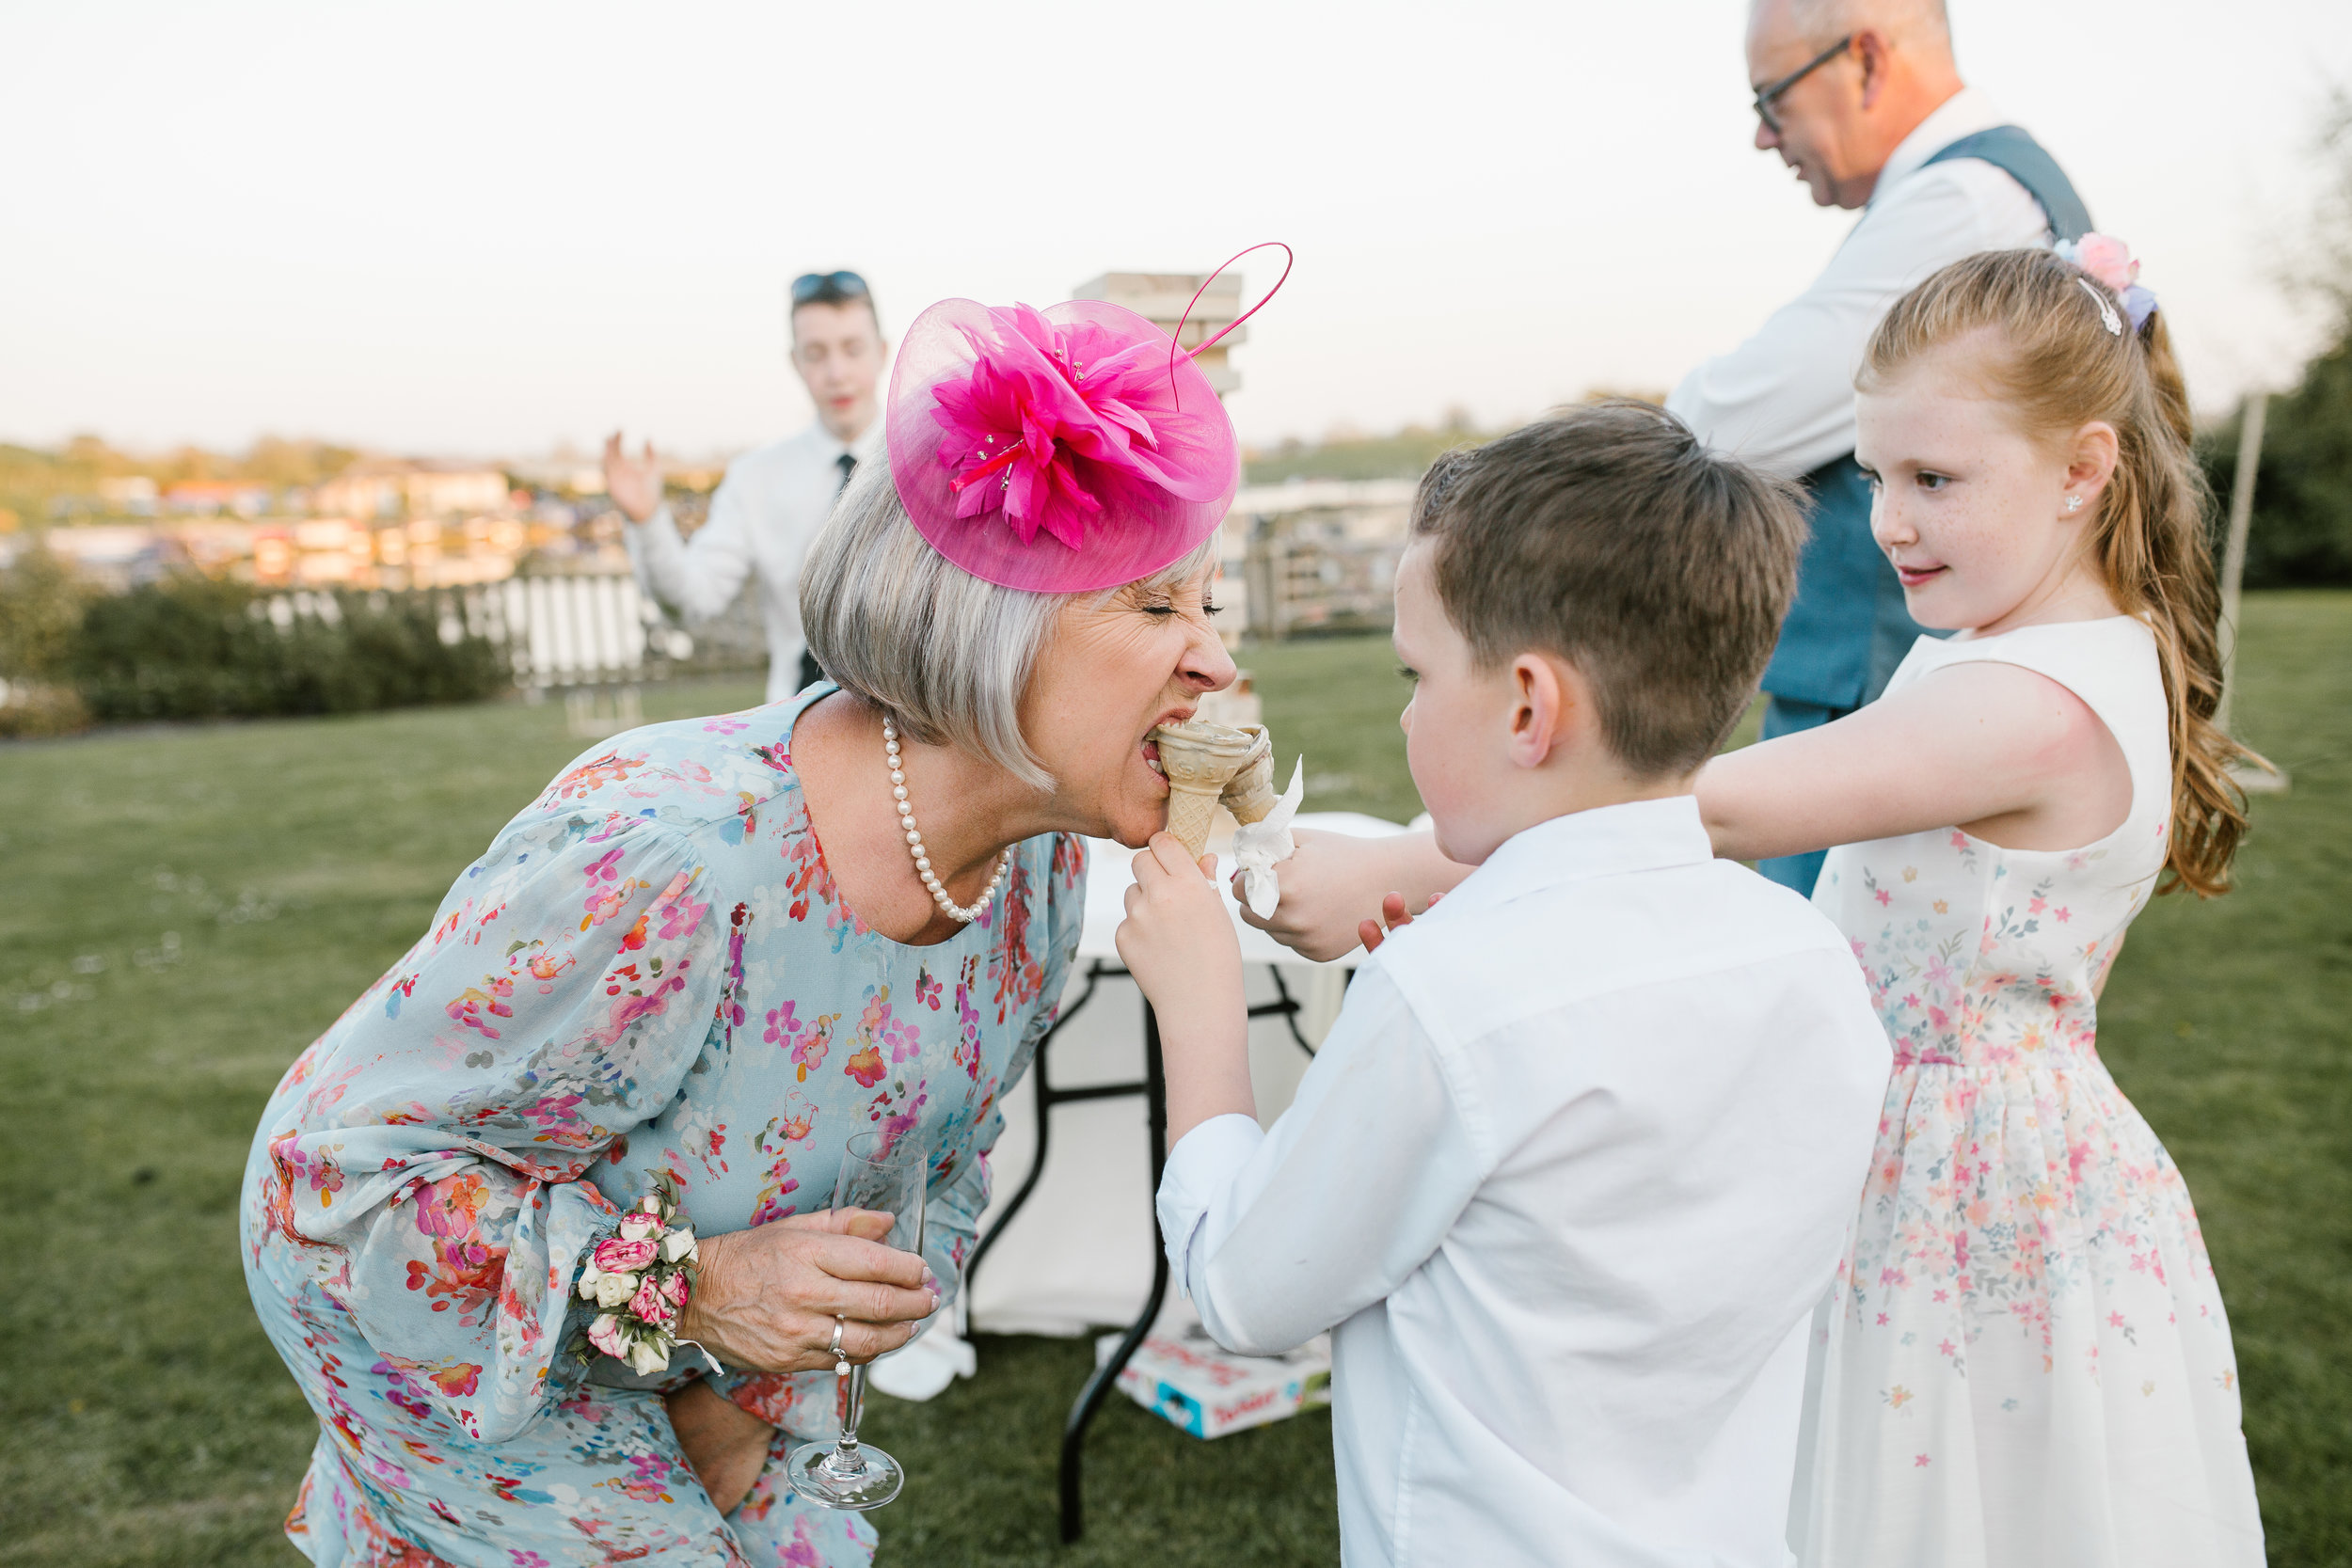 children at a wedding feed ice cream to the mother of the bride